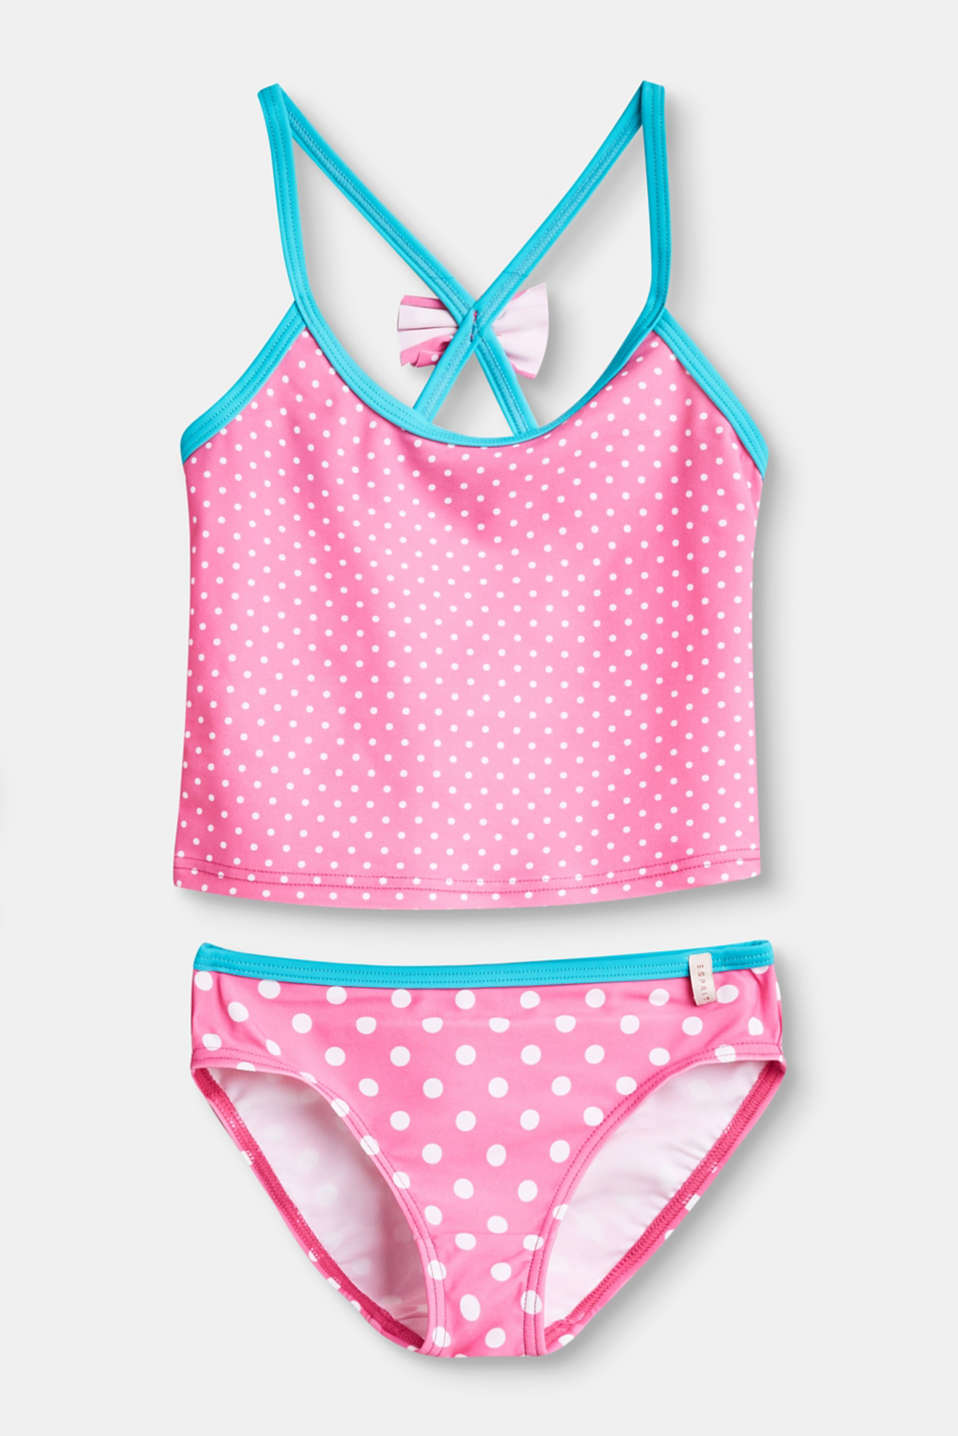 A true polka dot highlight! This tankini is a sweet head-turner thanks to the fresh polka dot print.